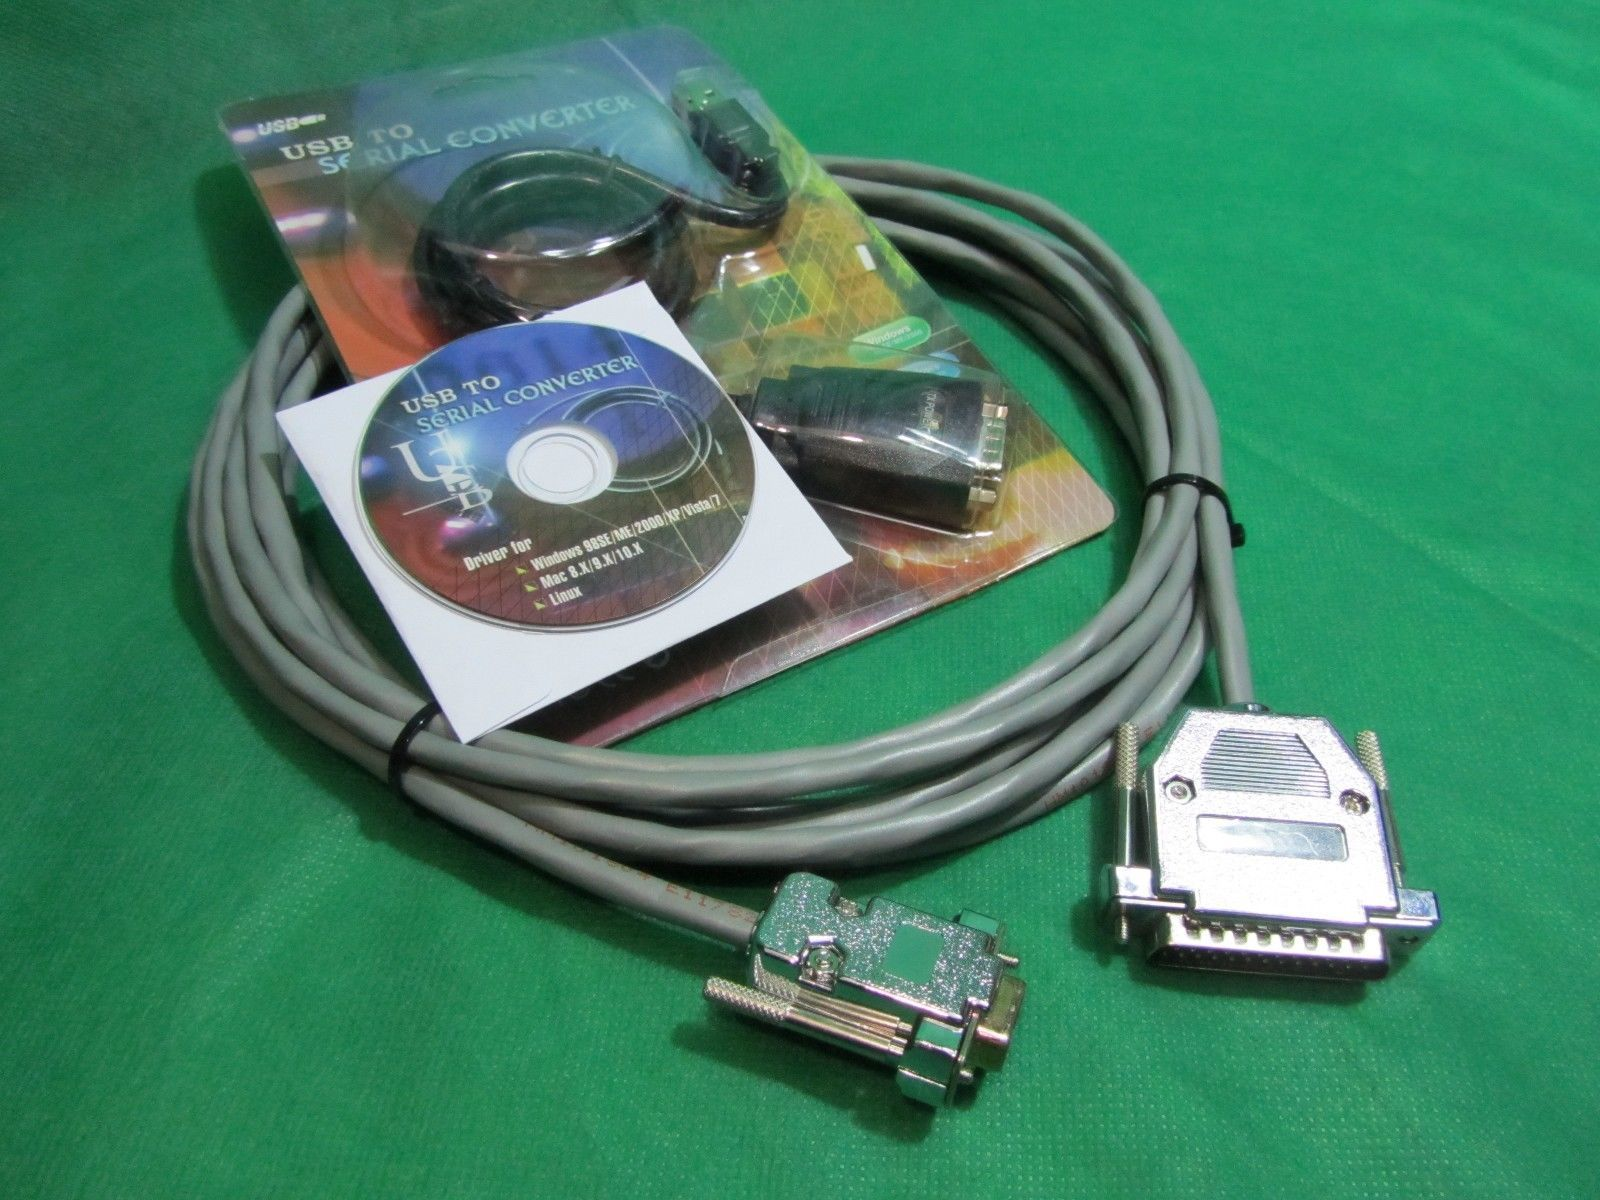 Primary image for 40 ft Quality CNC DNC RS232 Serial Cable DB9F to DB25M for PC and Laptop Kit.